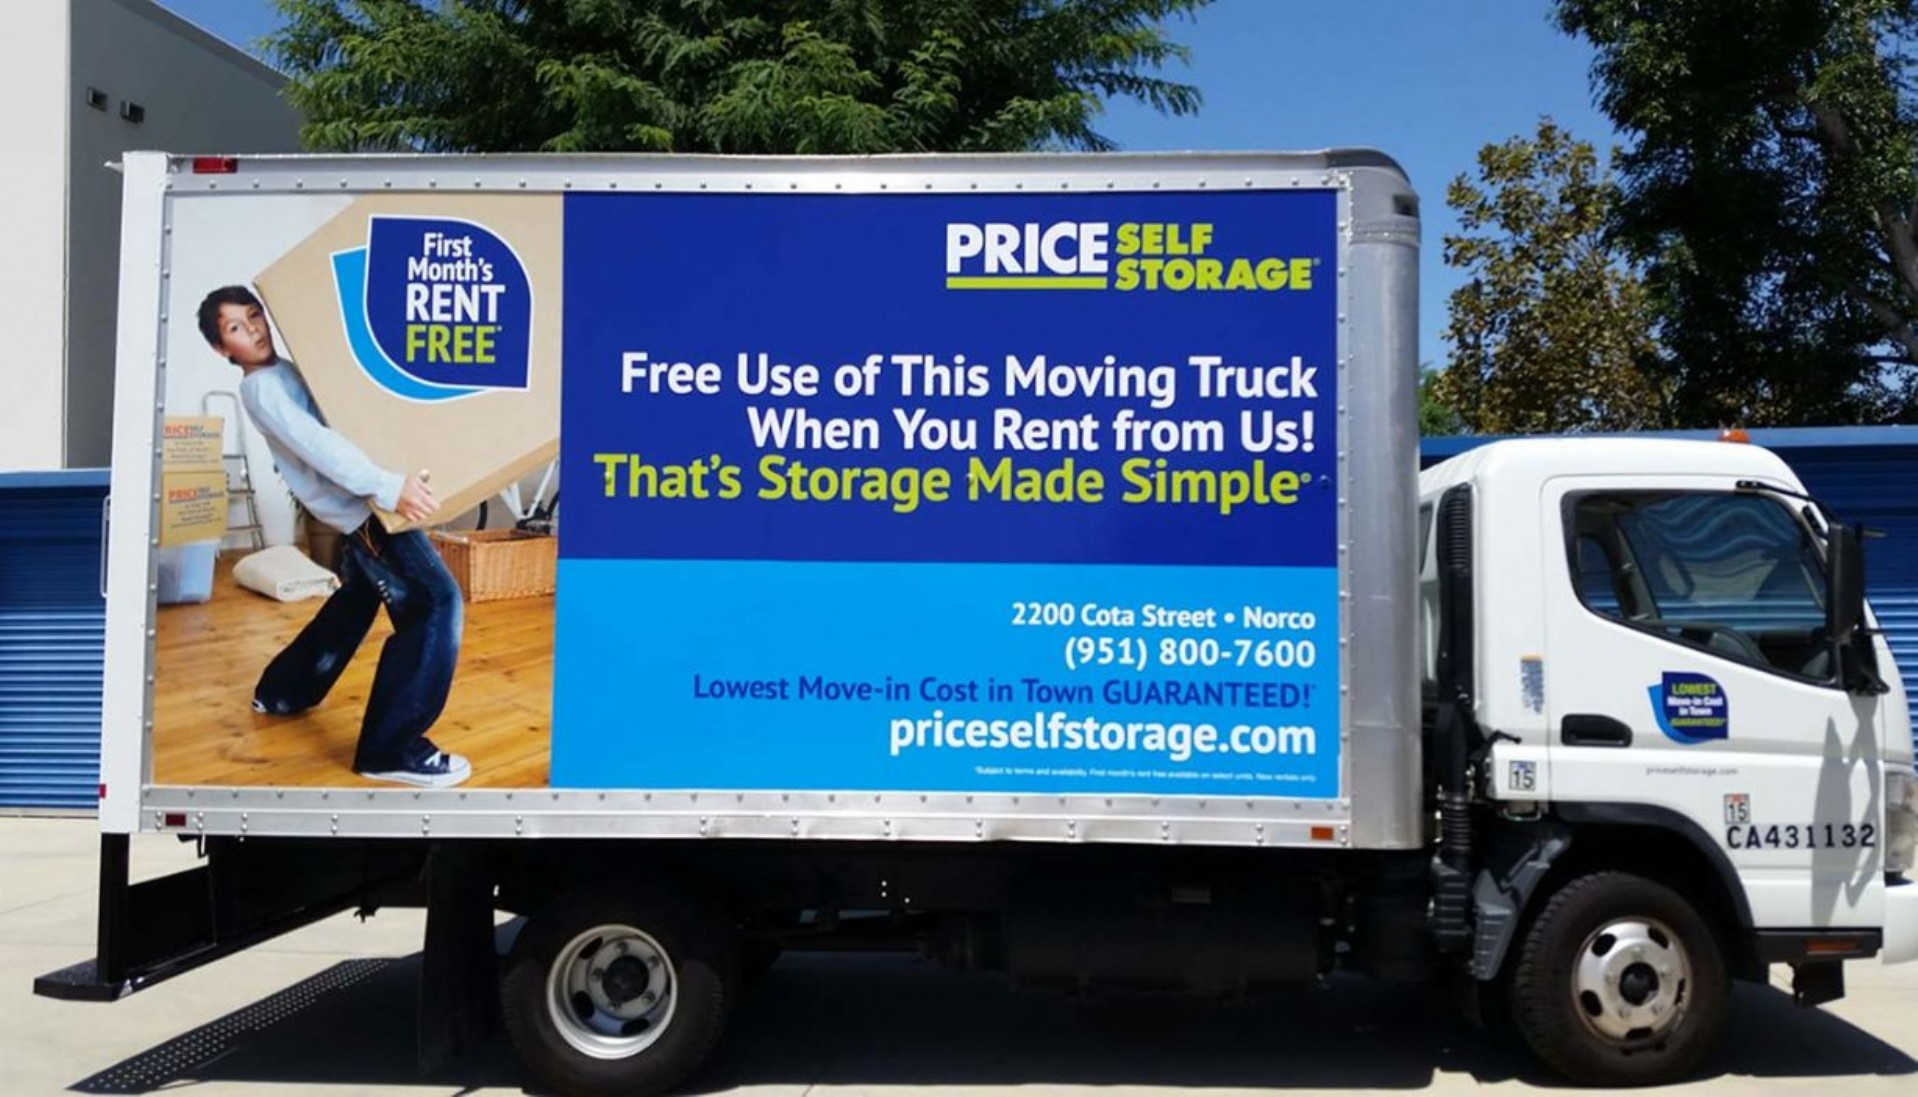 14 ft. box style moving truck with Price Self Storage graphics